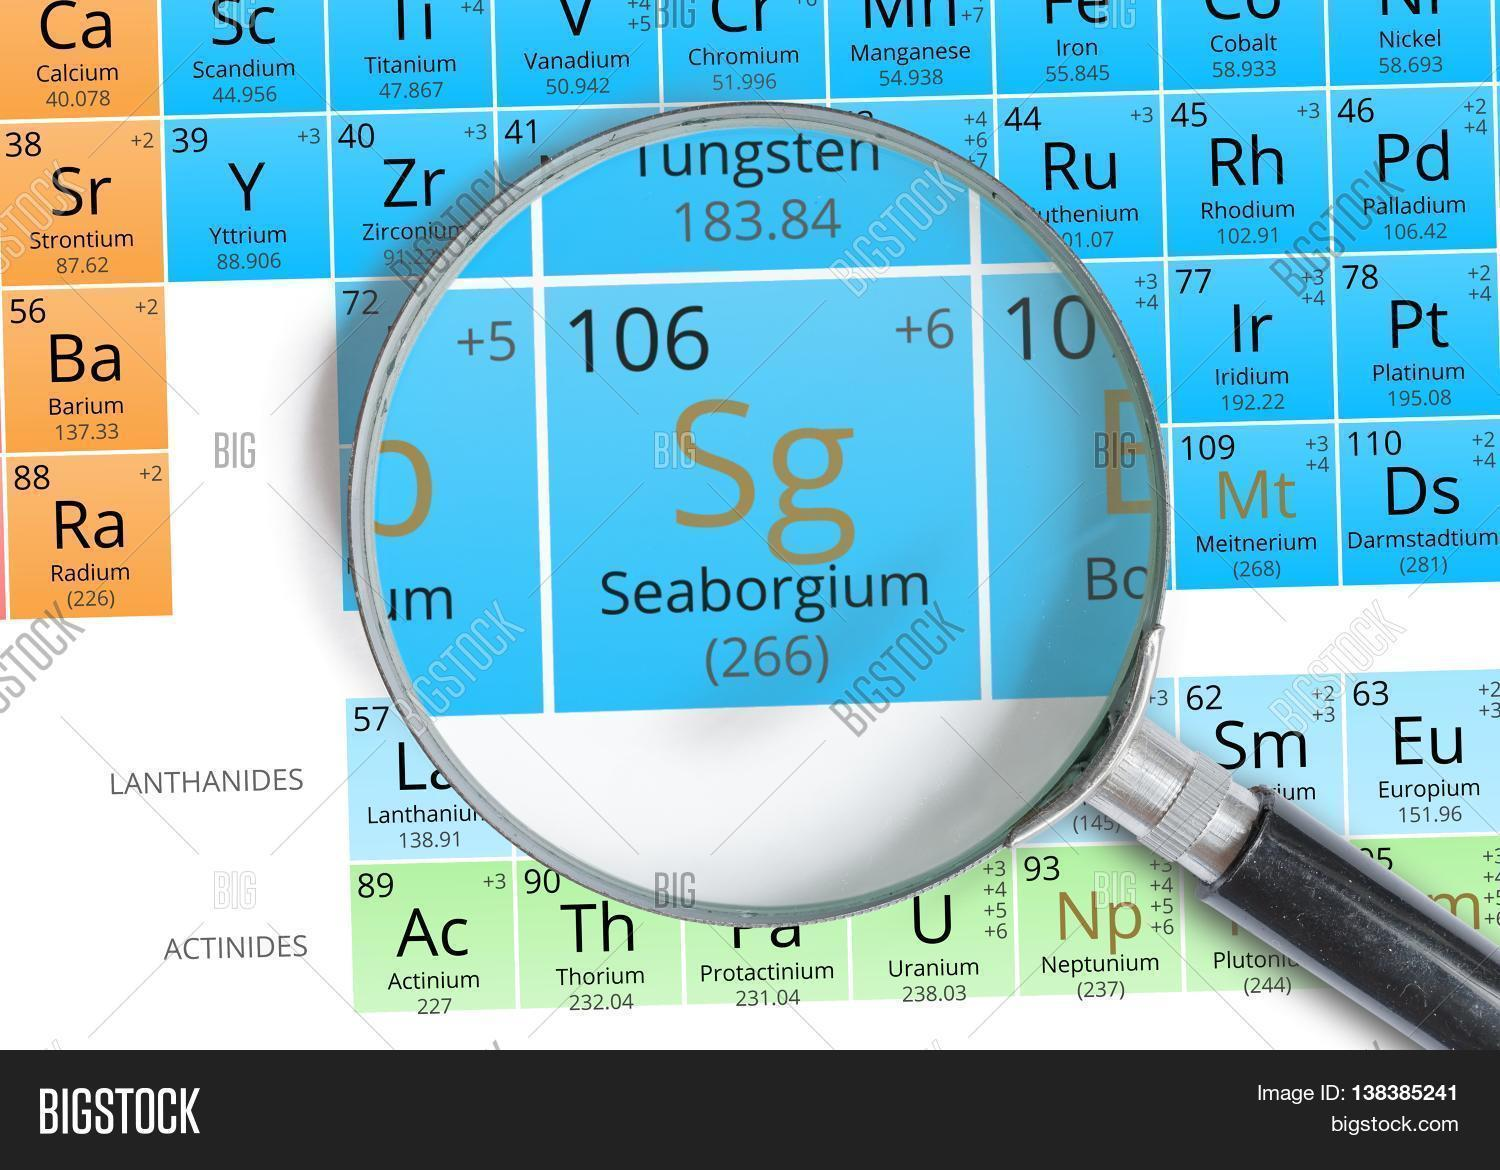 Seaborgium symbol sg image photo free trial bigstock seaborgium symbol sg element of the periodic table zoomed wit urtaz Gallery